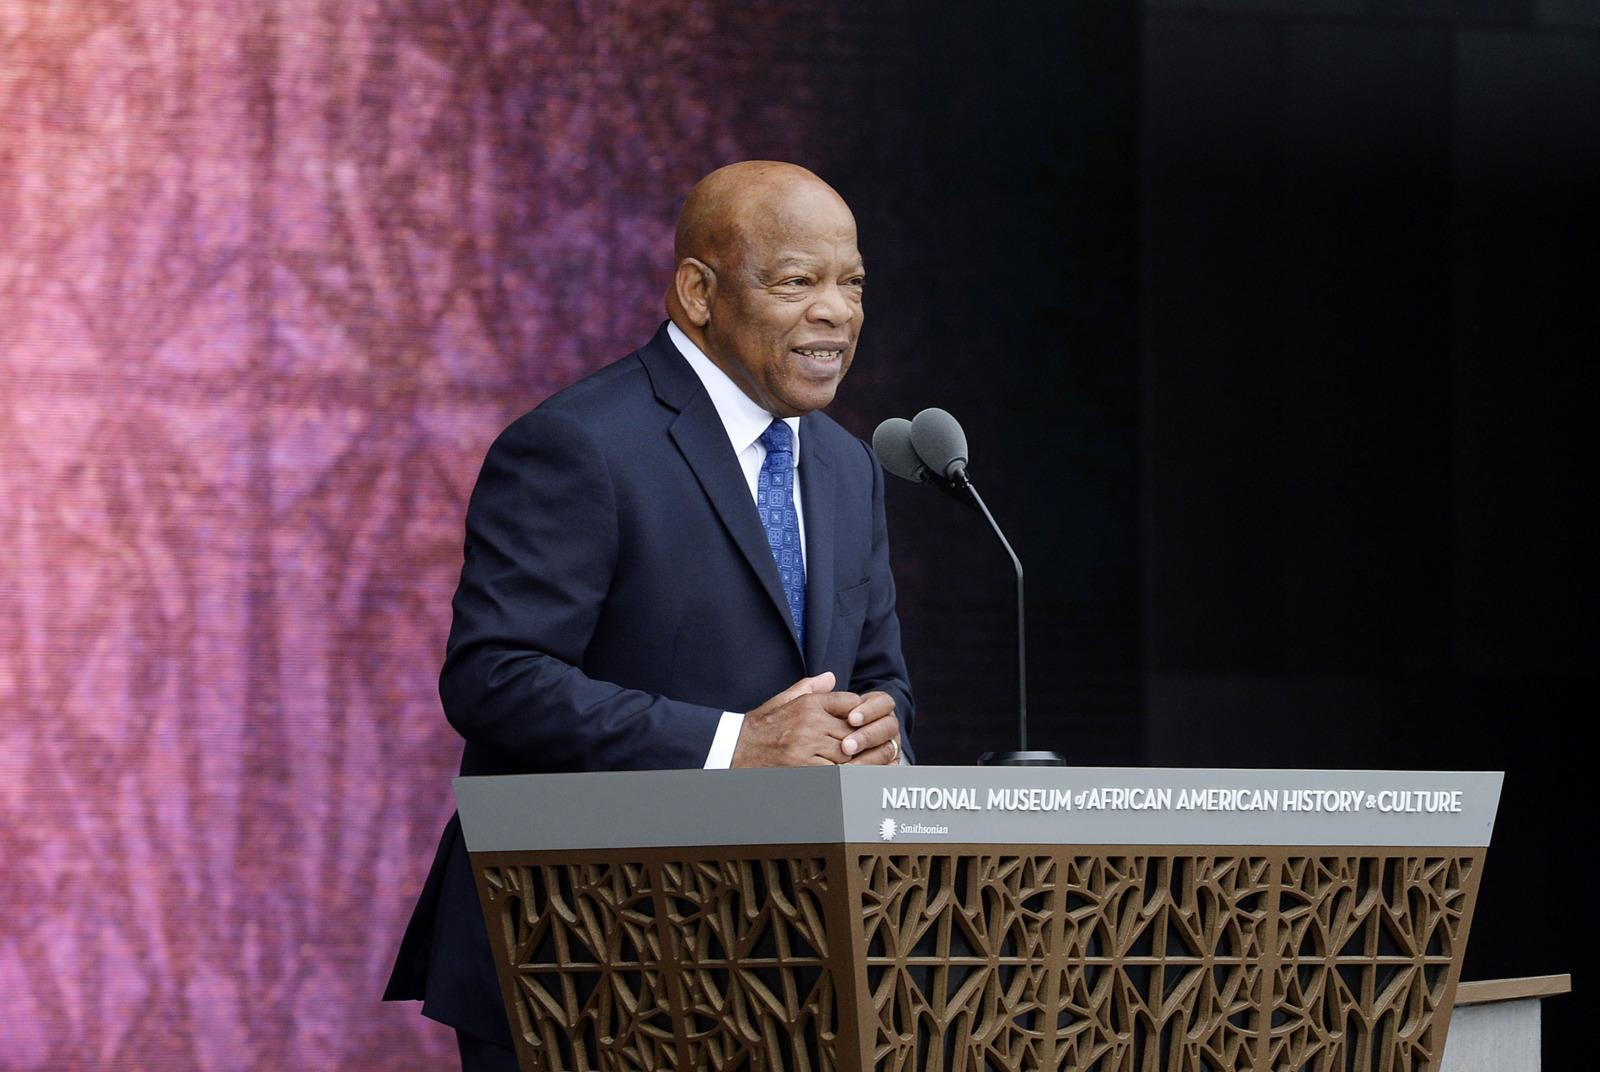 If You Want to Hear How 'Talk, Talk, Talk' John Lewis Is, PBS's New Documentary Has You Covered